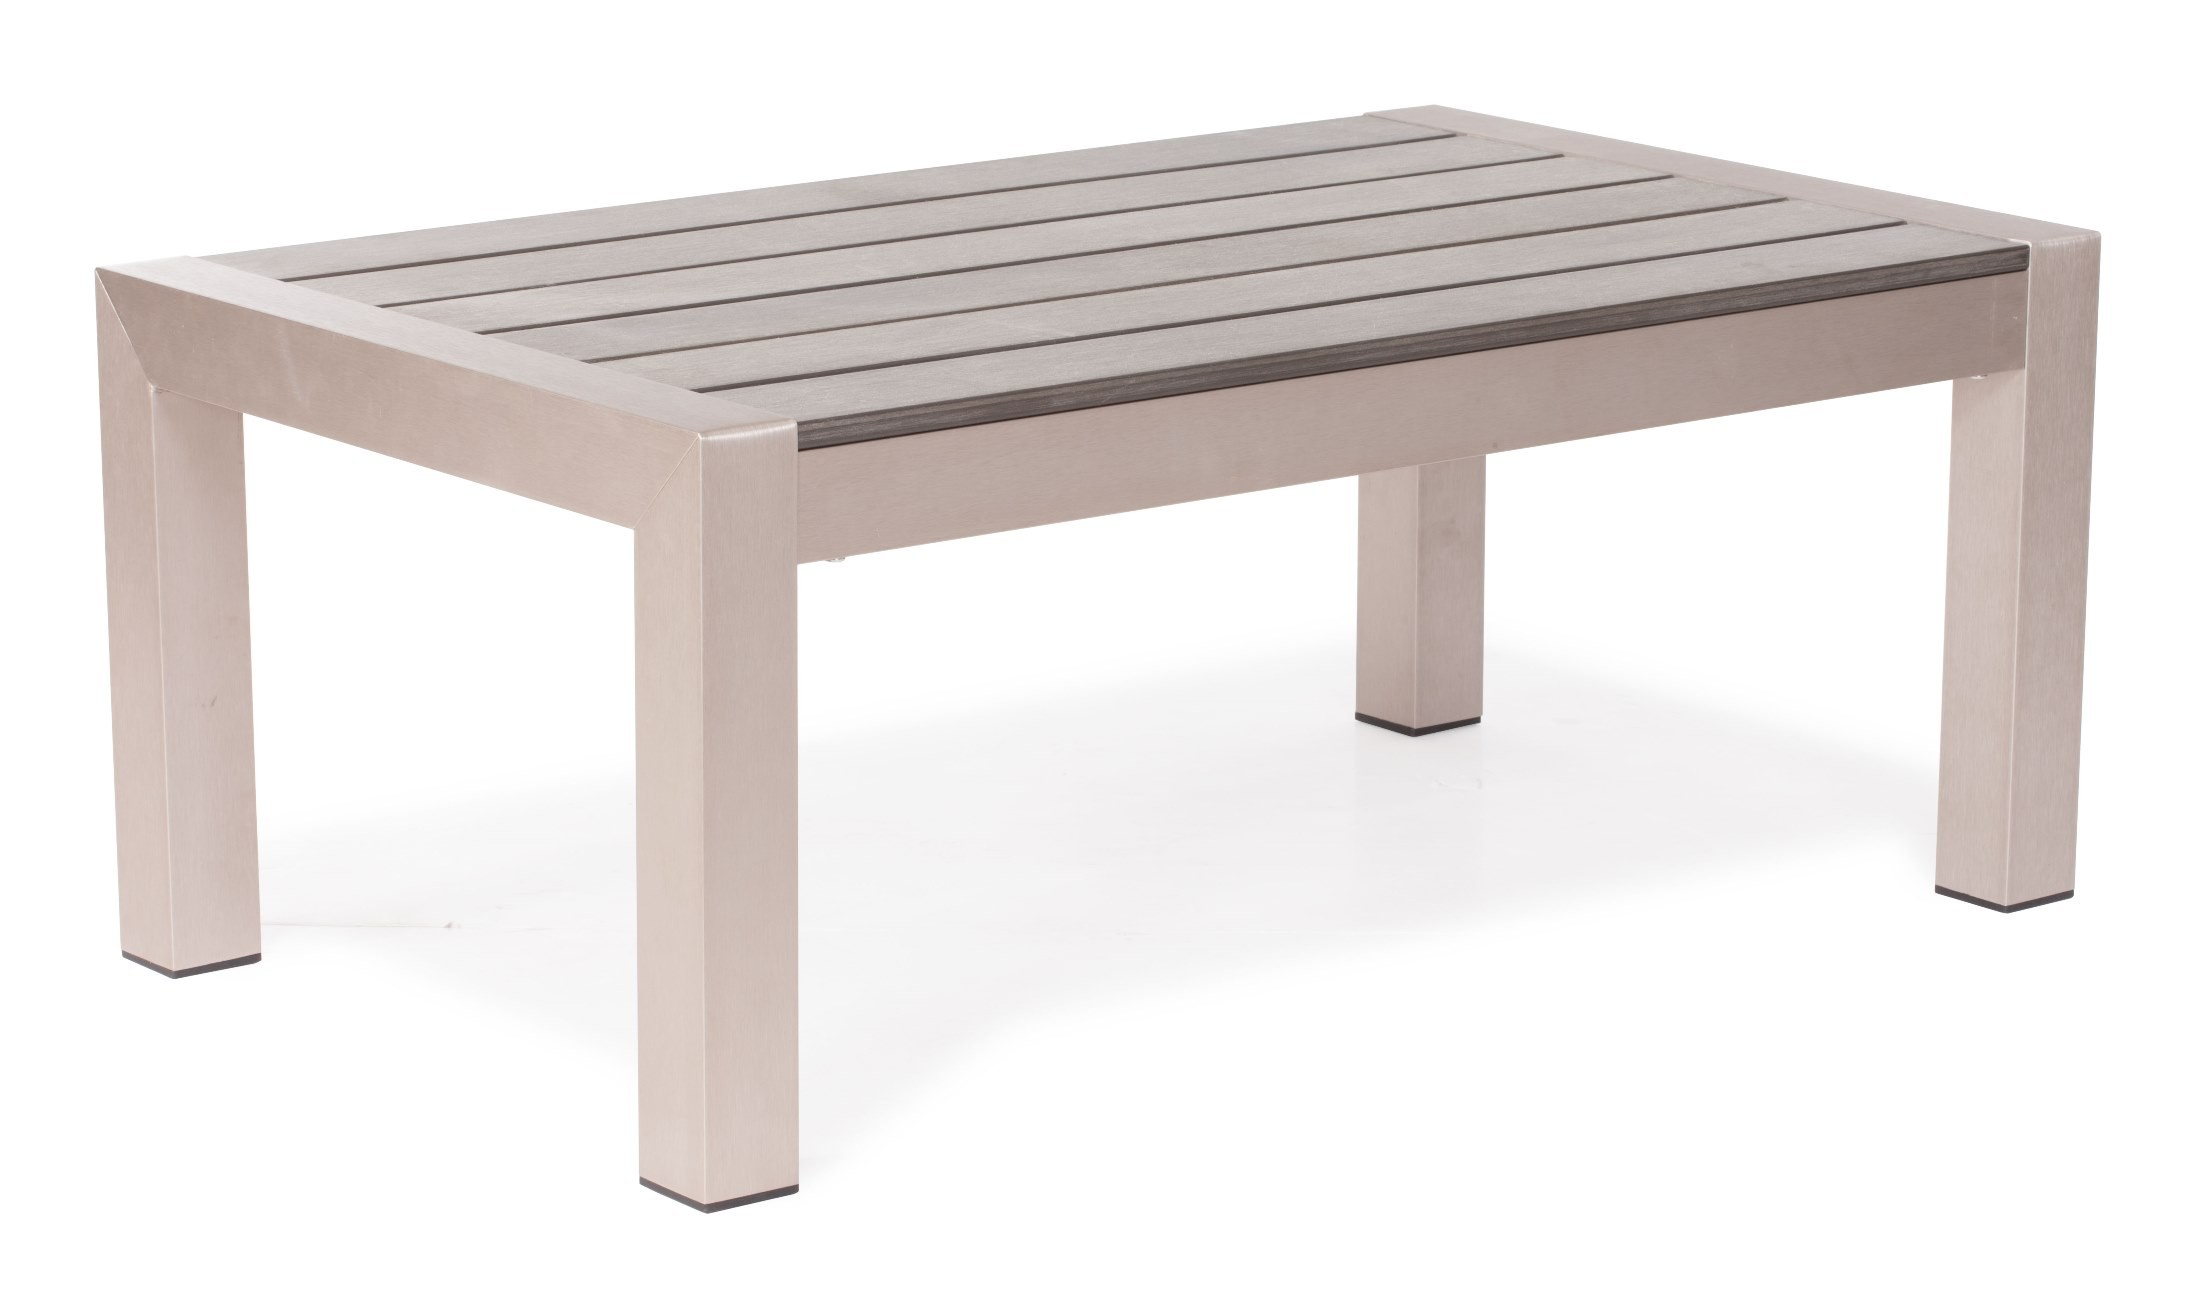 Cosmopolitan Brushed Aluminum Coffee Table From Zuo Mod 701860 Coleman Furniture